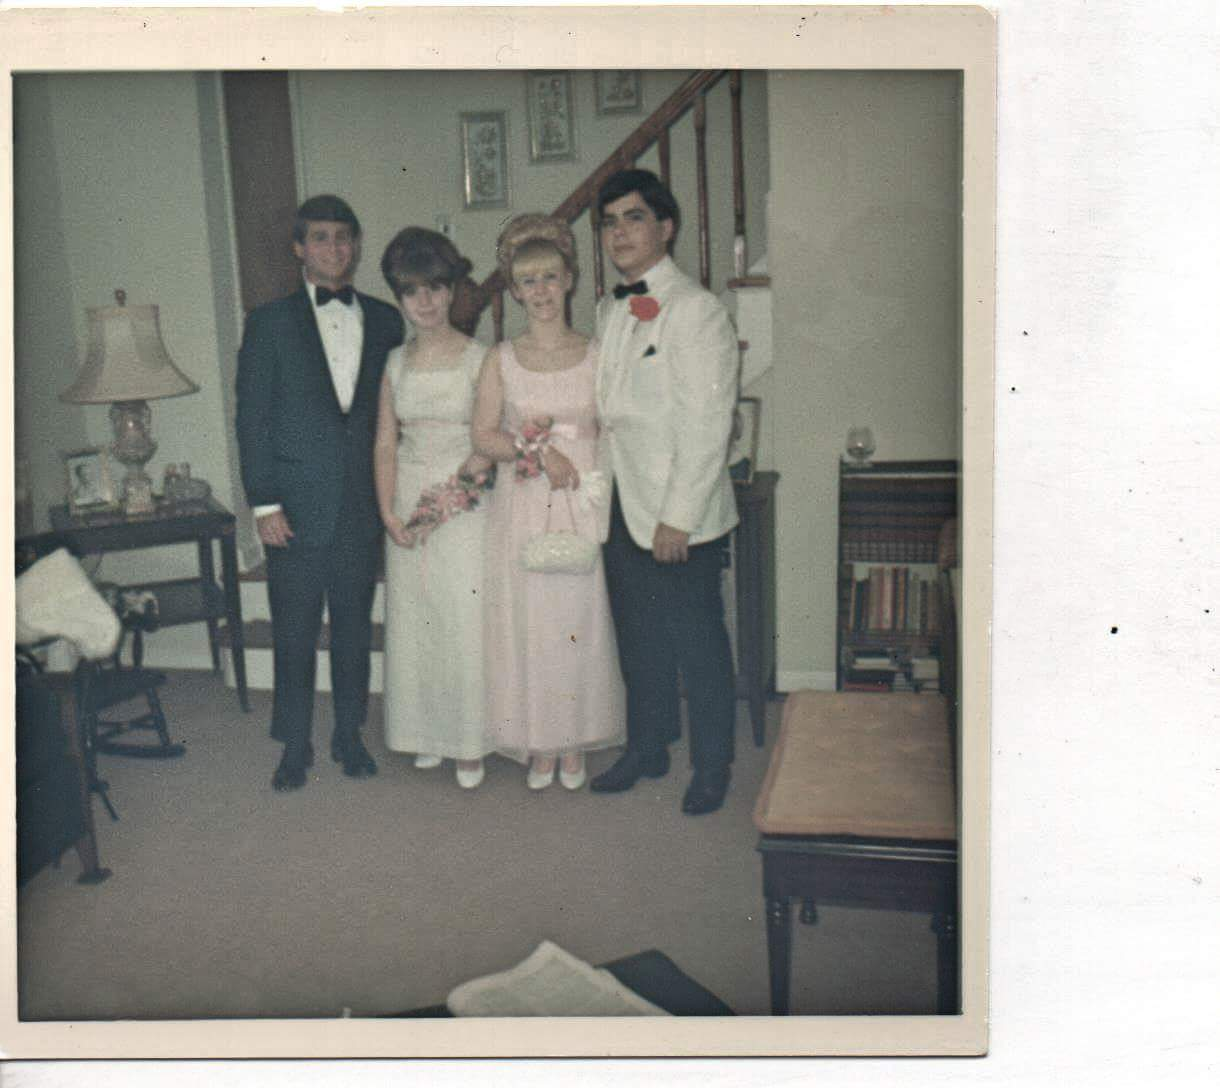 John Adams Prom 6/67. The Flick. Great memories.  All so young! A lifetime ago.